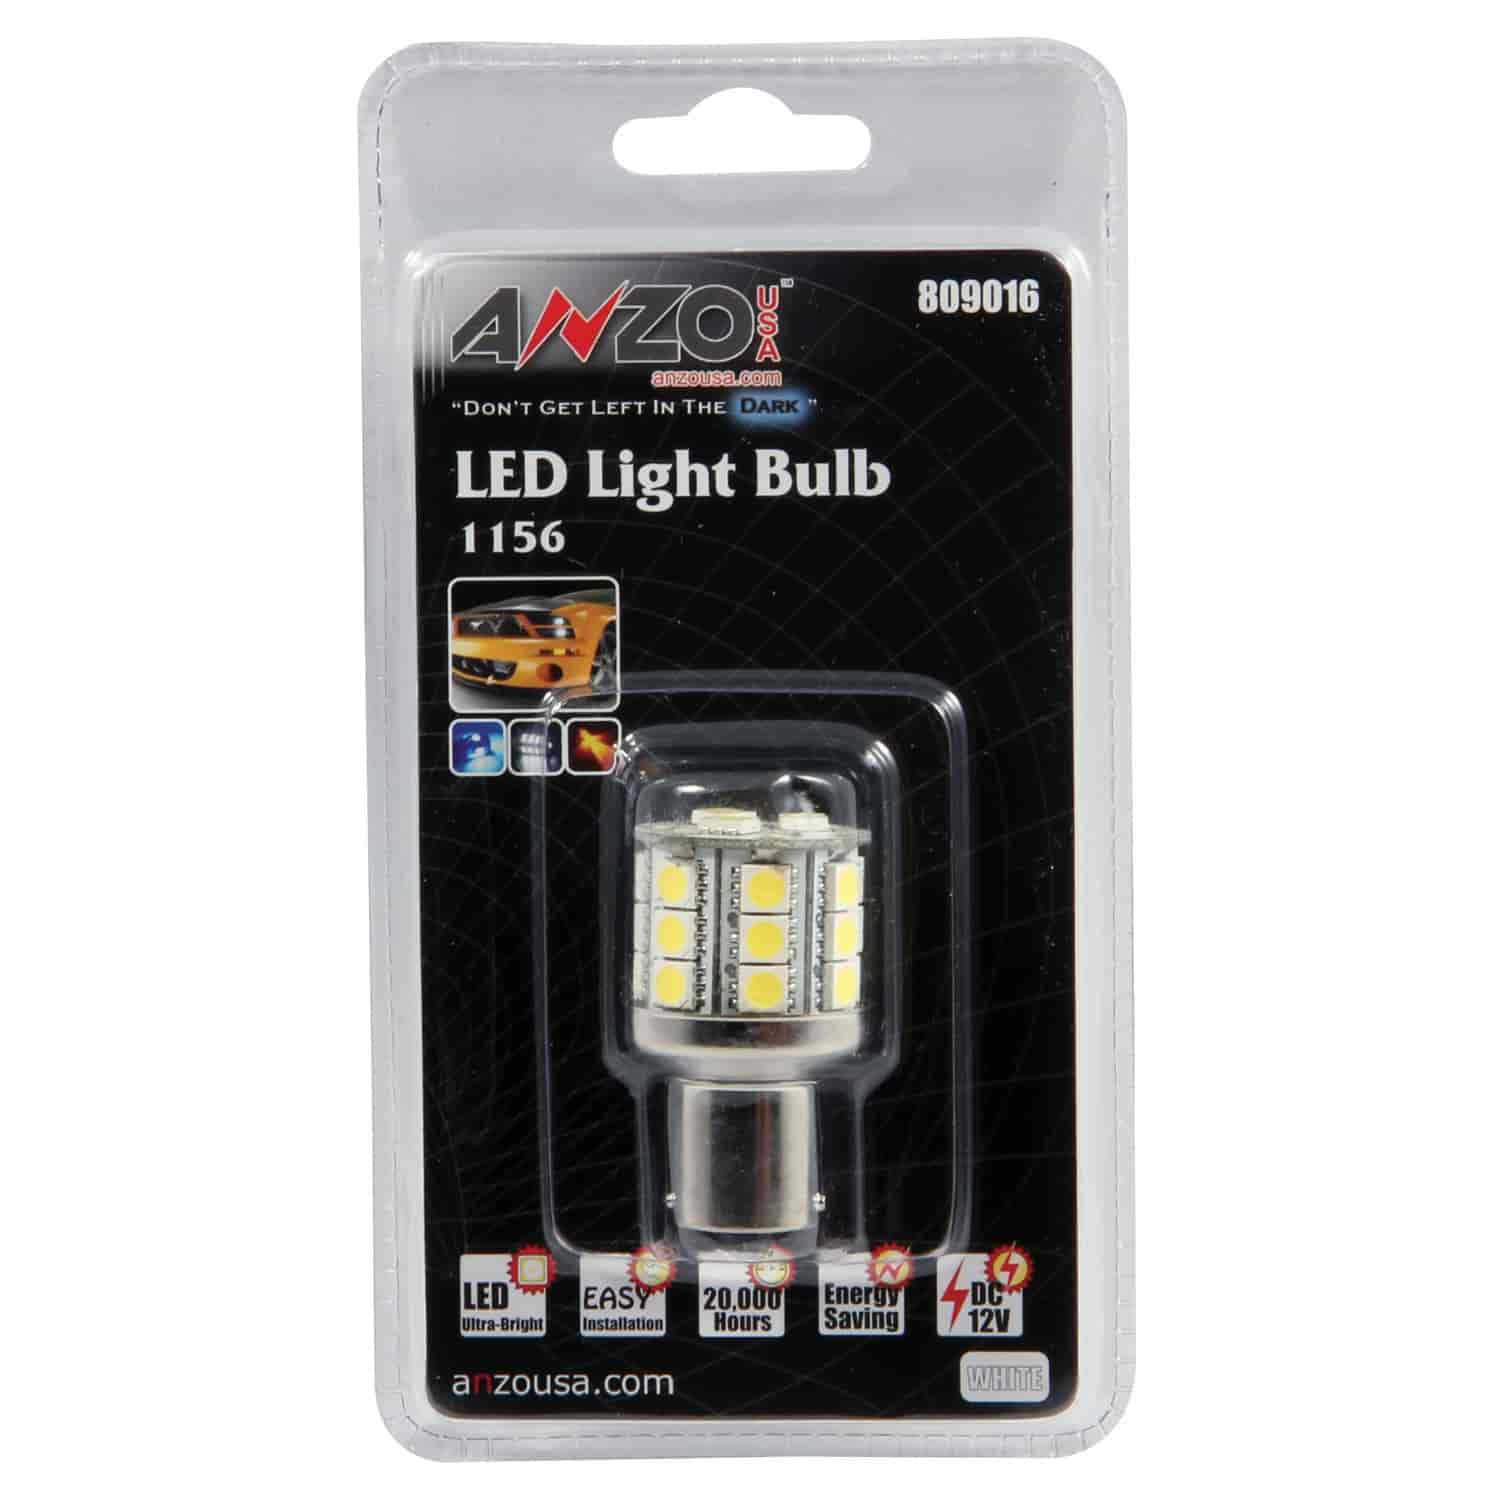 Anzo 809016 - Anzo LED Universal Light Bulbs